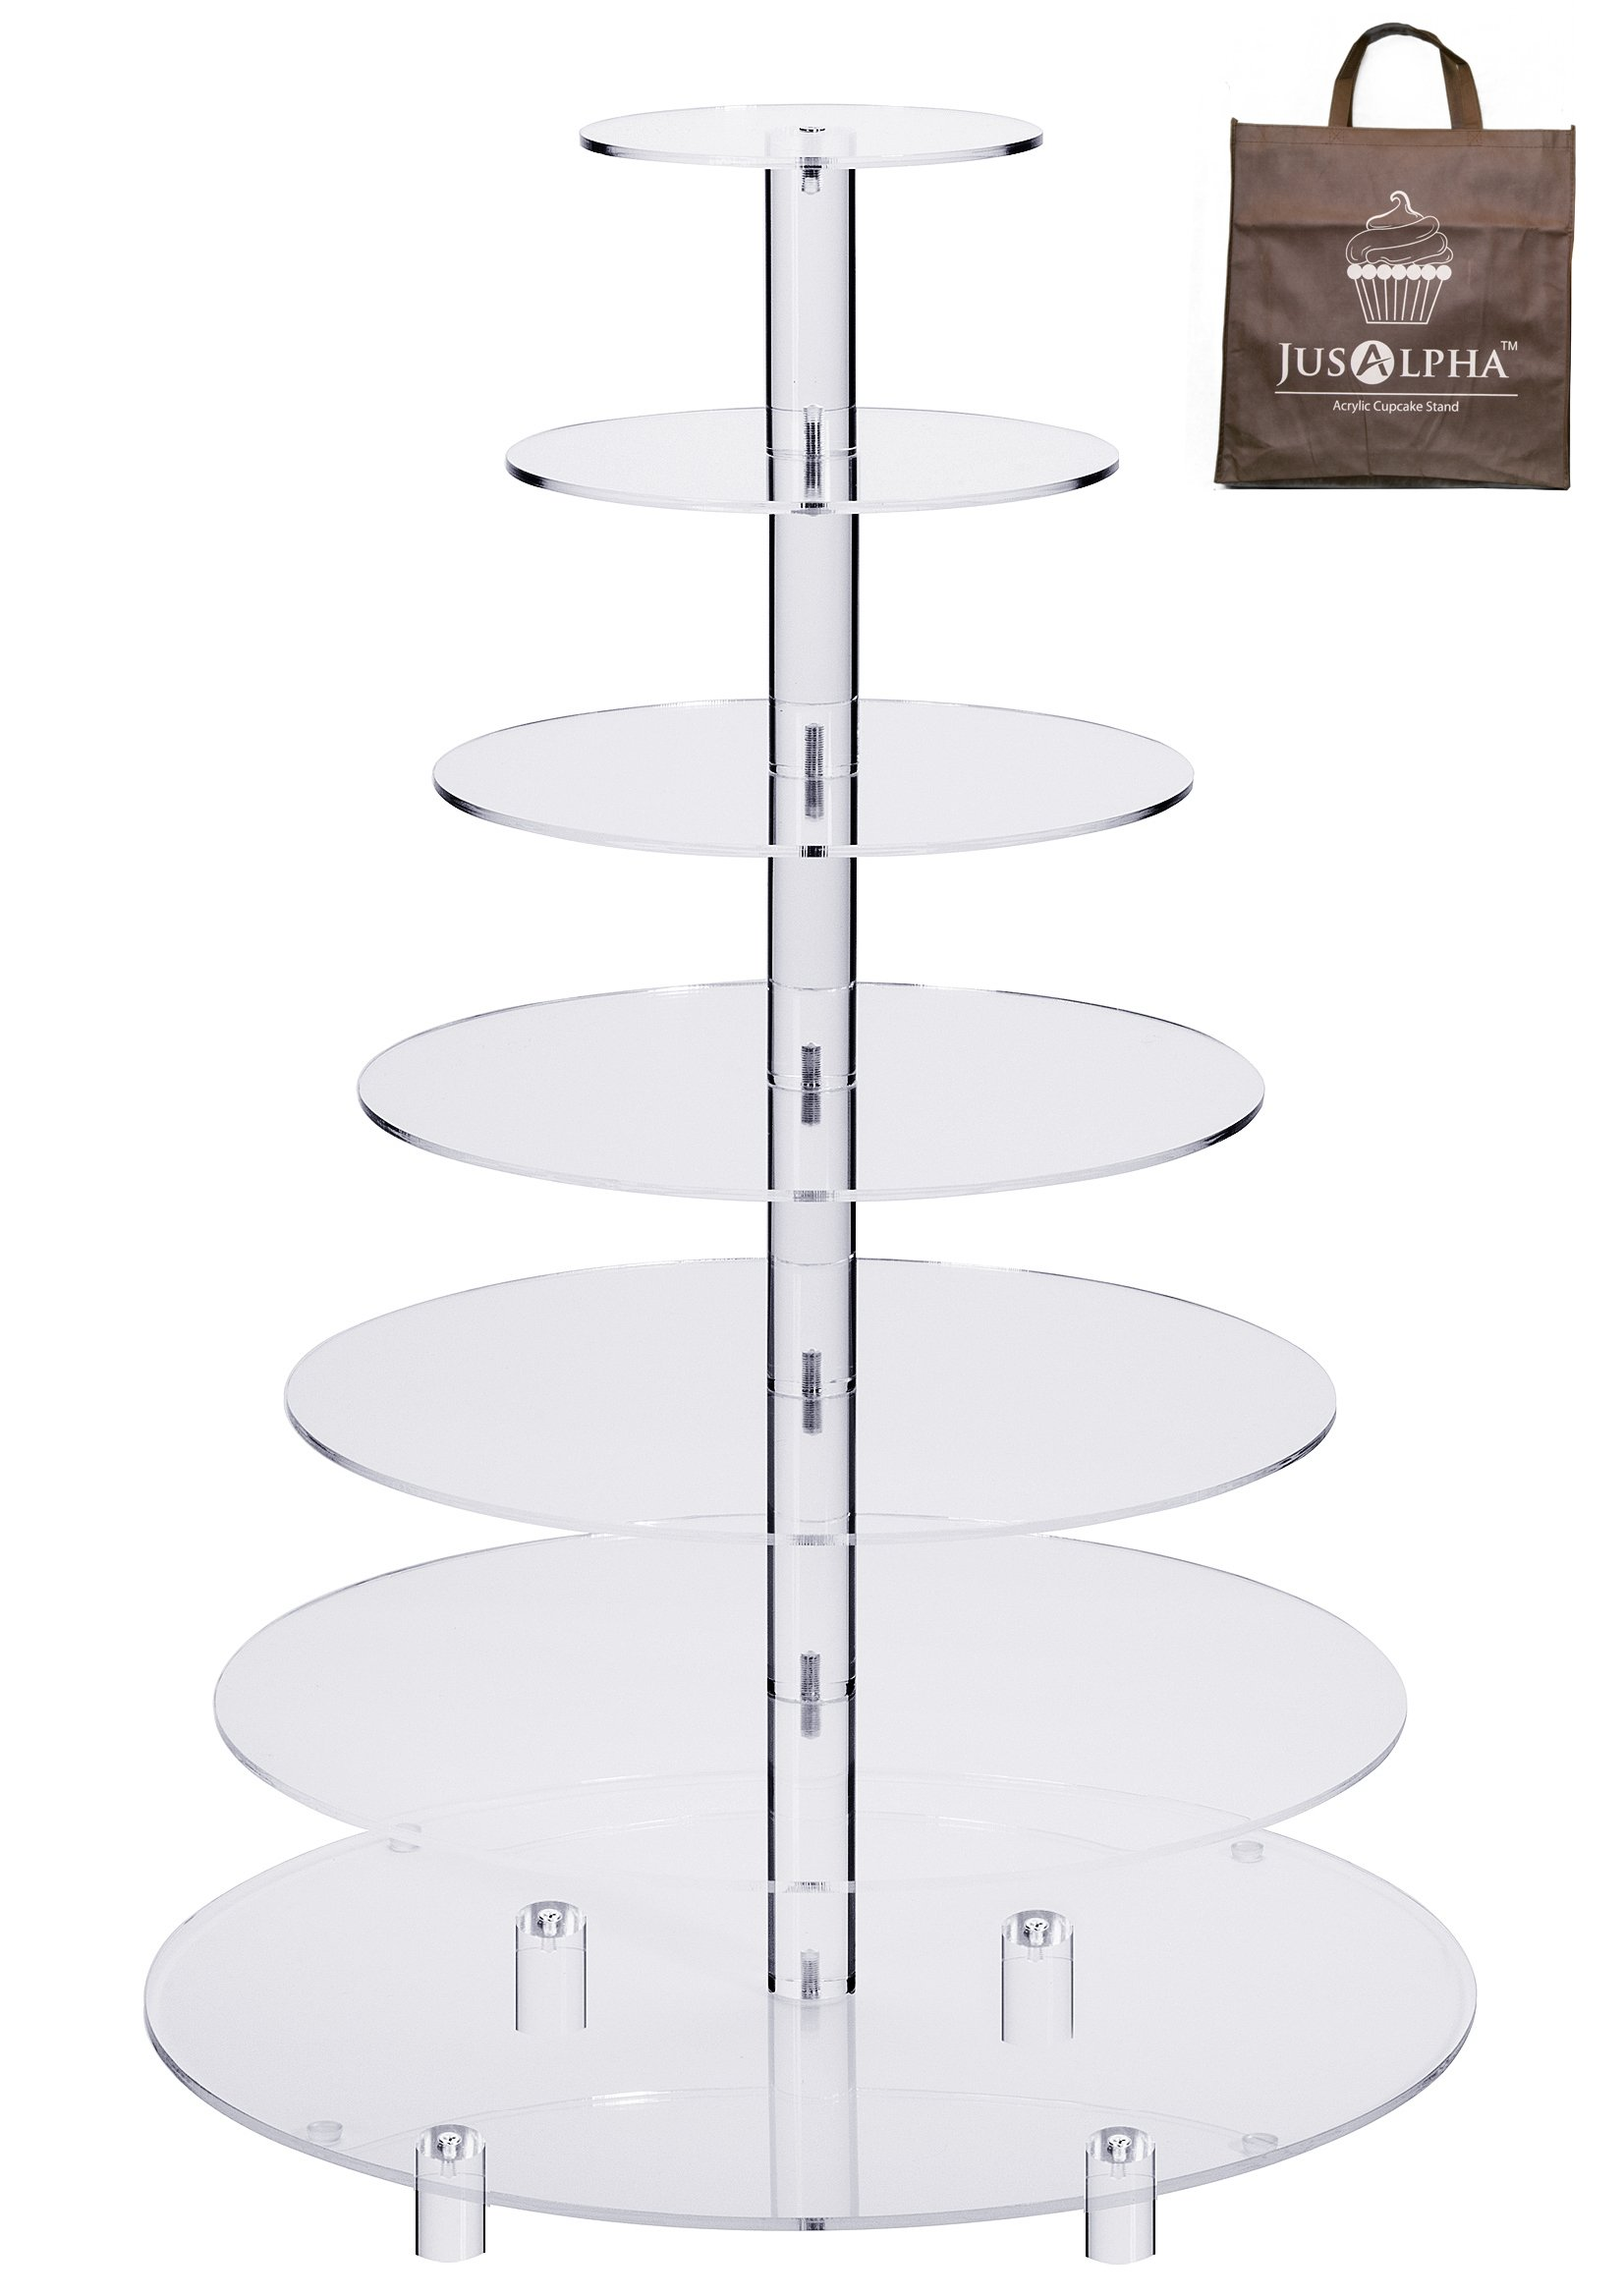 Jusalpha Large 7-Tier Acrylic Round Wedding Cake Stand-Cupcake Stand Tower-Dessert Stand-Pastry Serving Platter-Food Display Stand For Large Event (Large With Rod Feet Base) (7RF) by Jusalpha